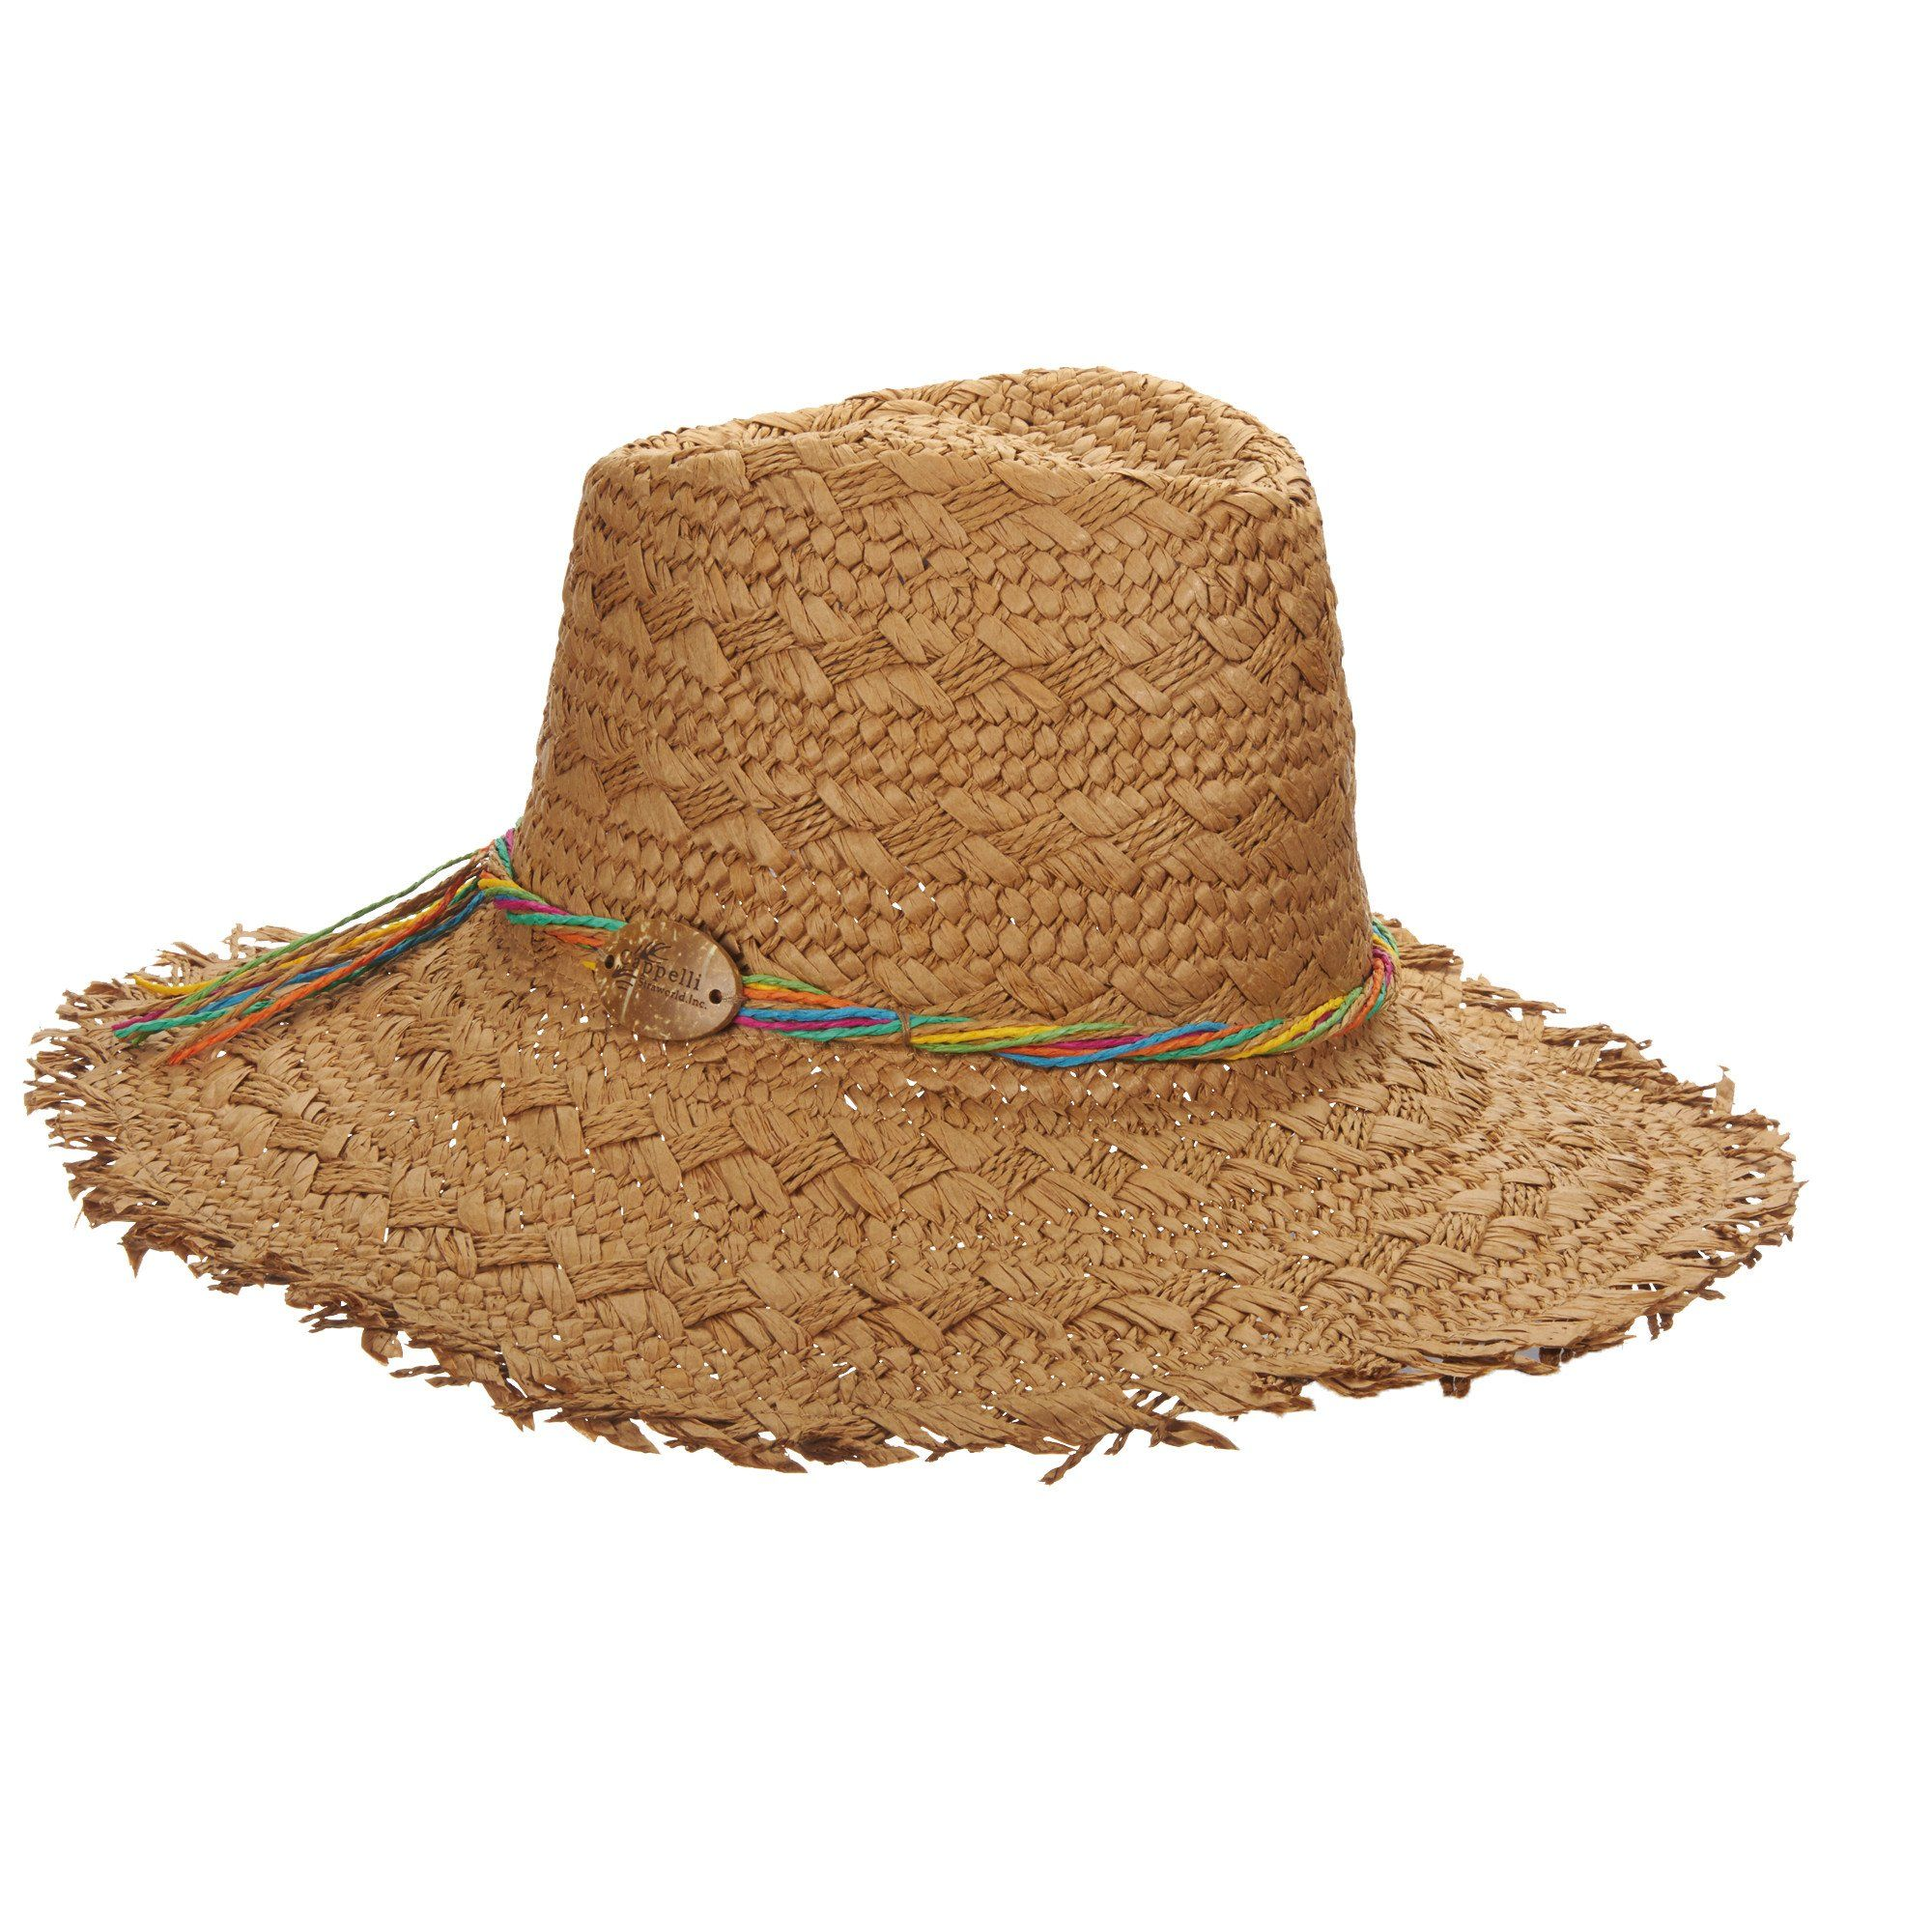 414004d564a6ae Cappelli Boho Chic Floppy Safari | Products | Pinterest | Products